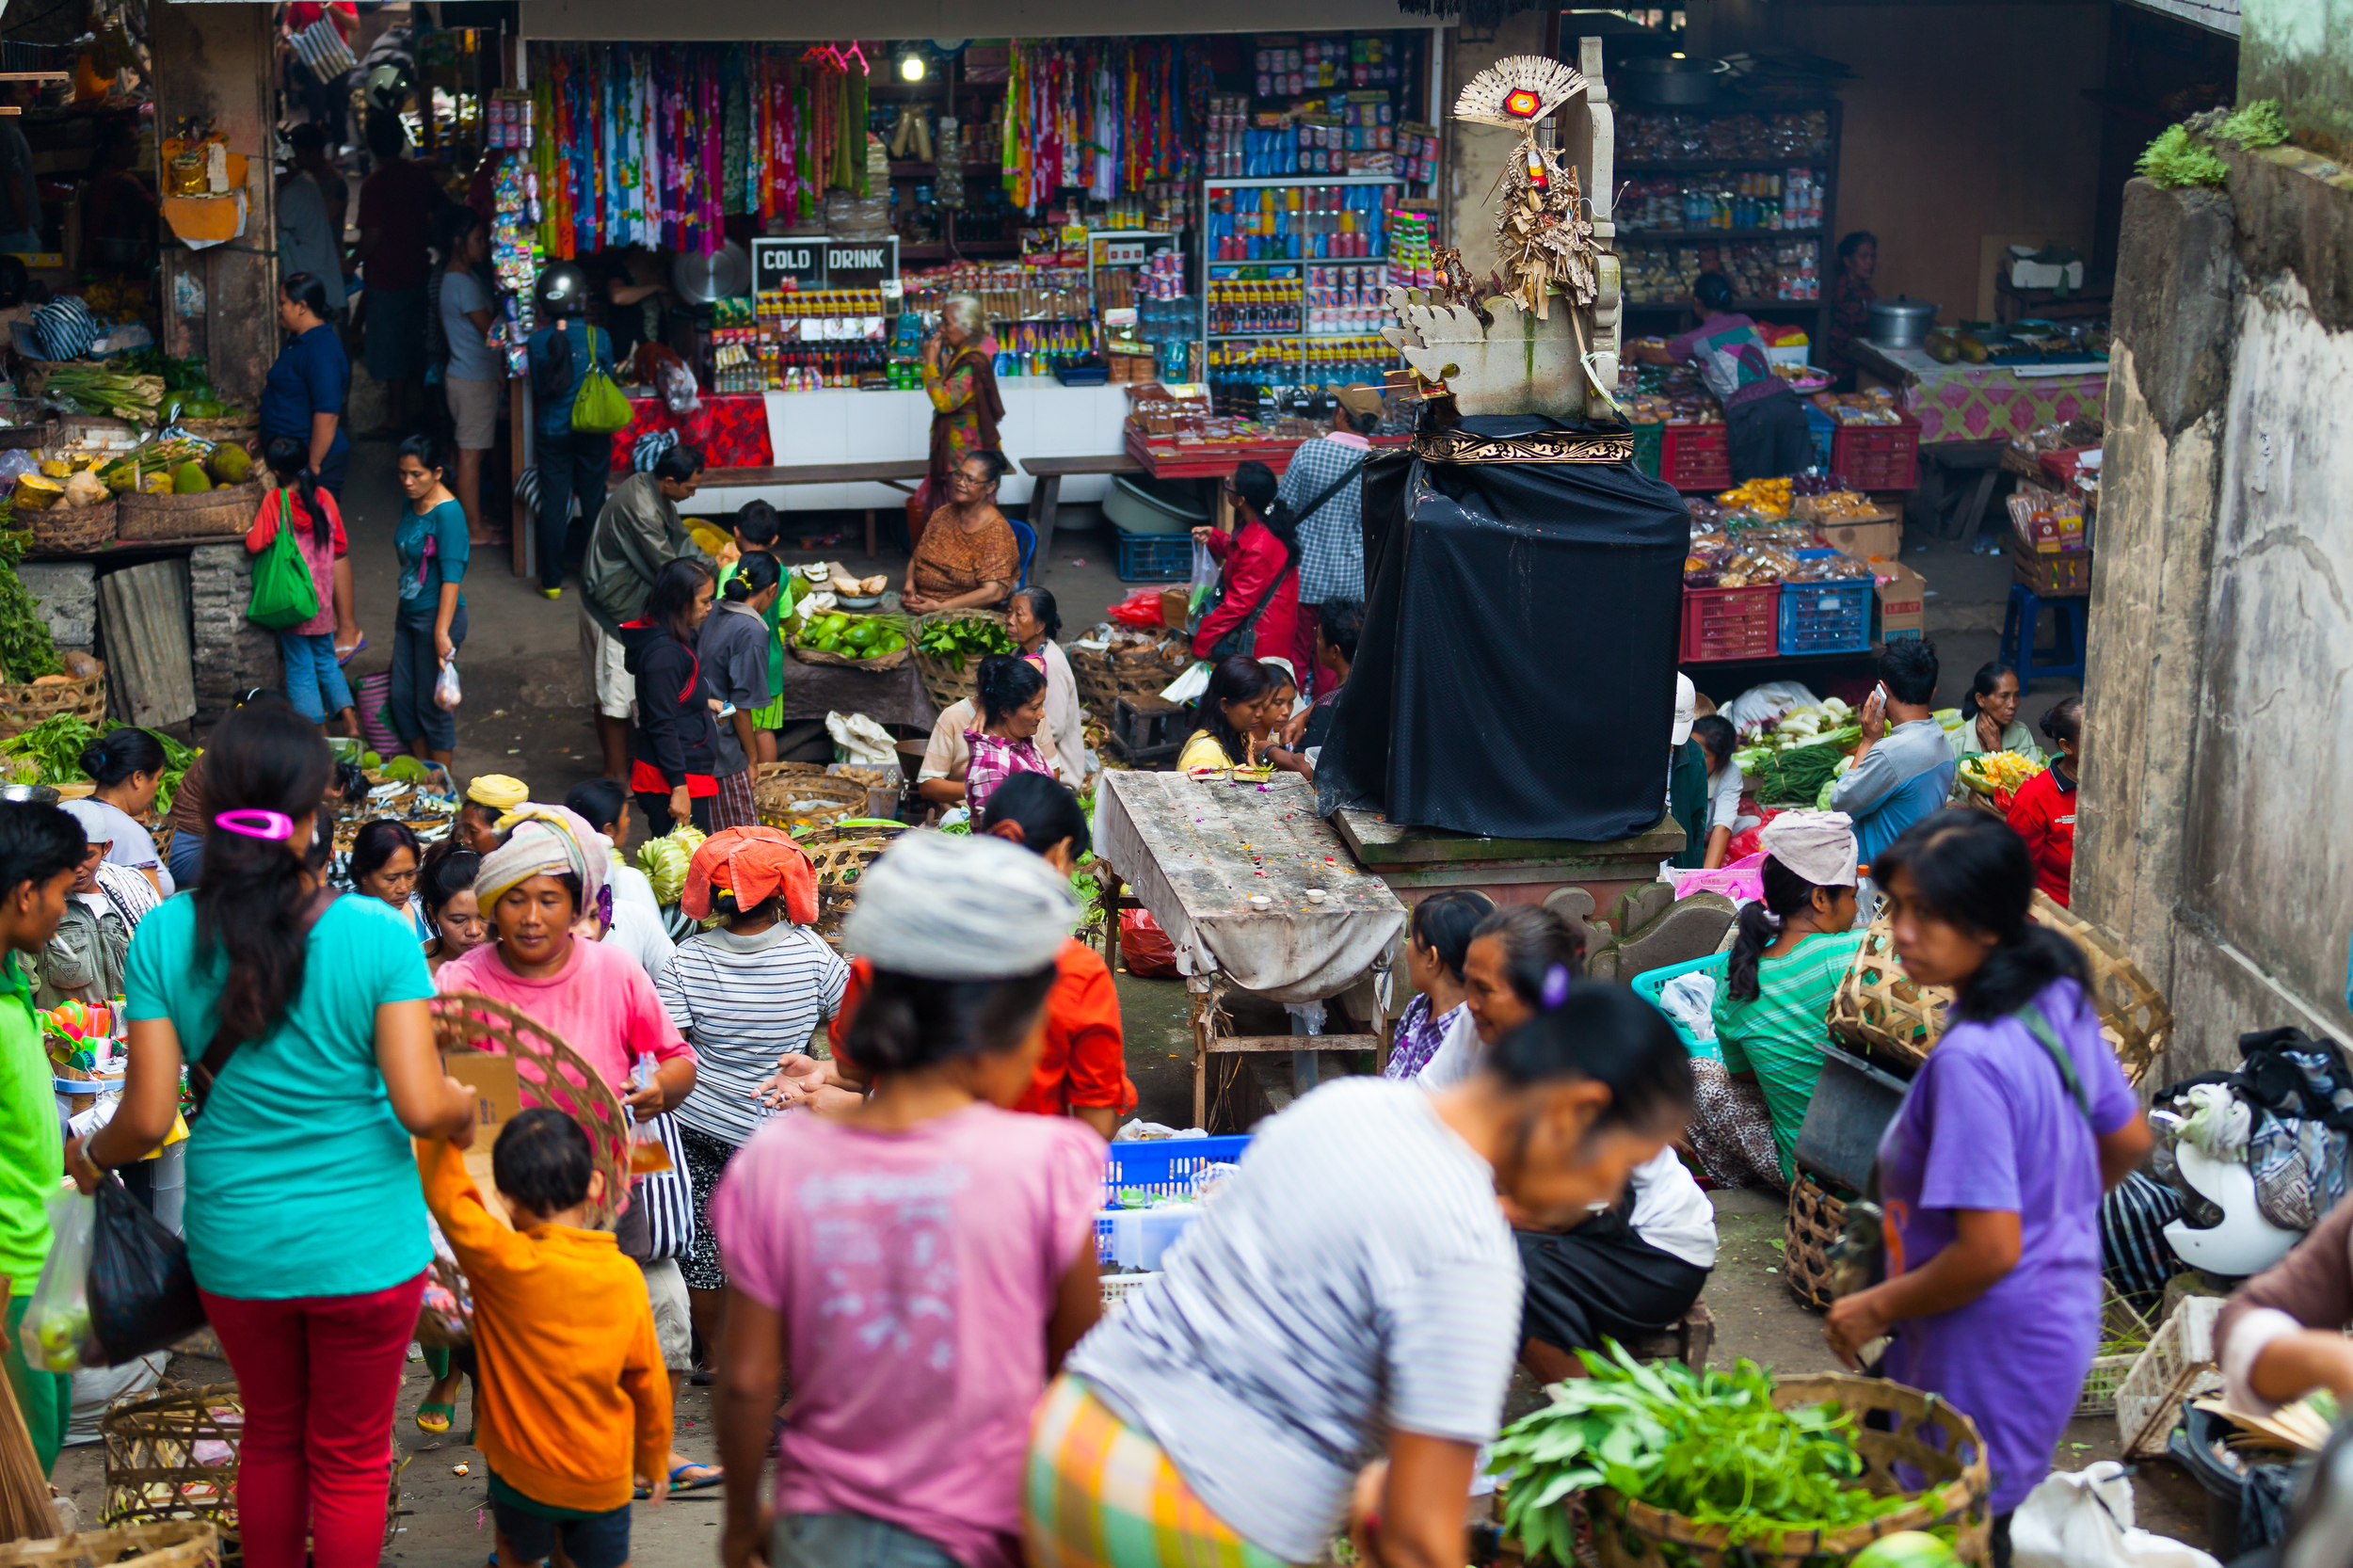 The Colours of the Ubud market